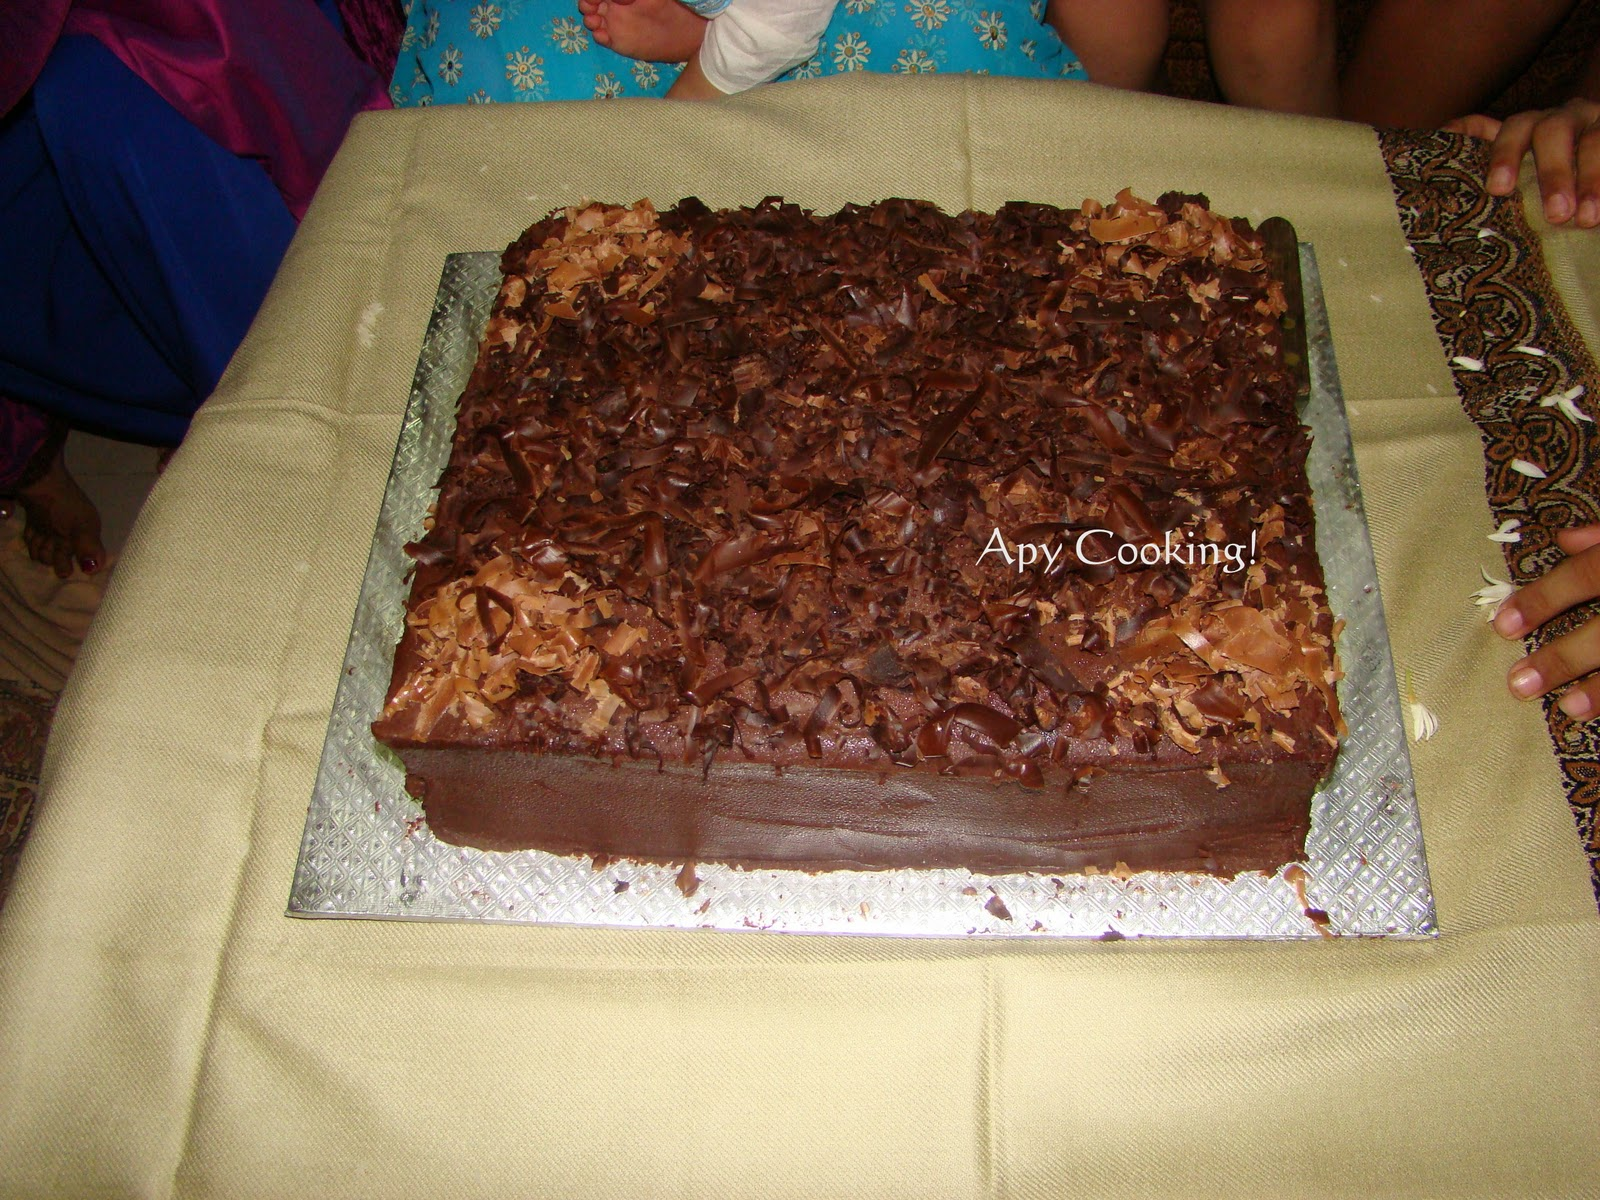 Eggless Chocolate Cake Images : Apy Cooking: Eggless Chocolate Cake